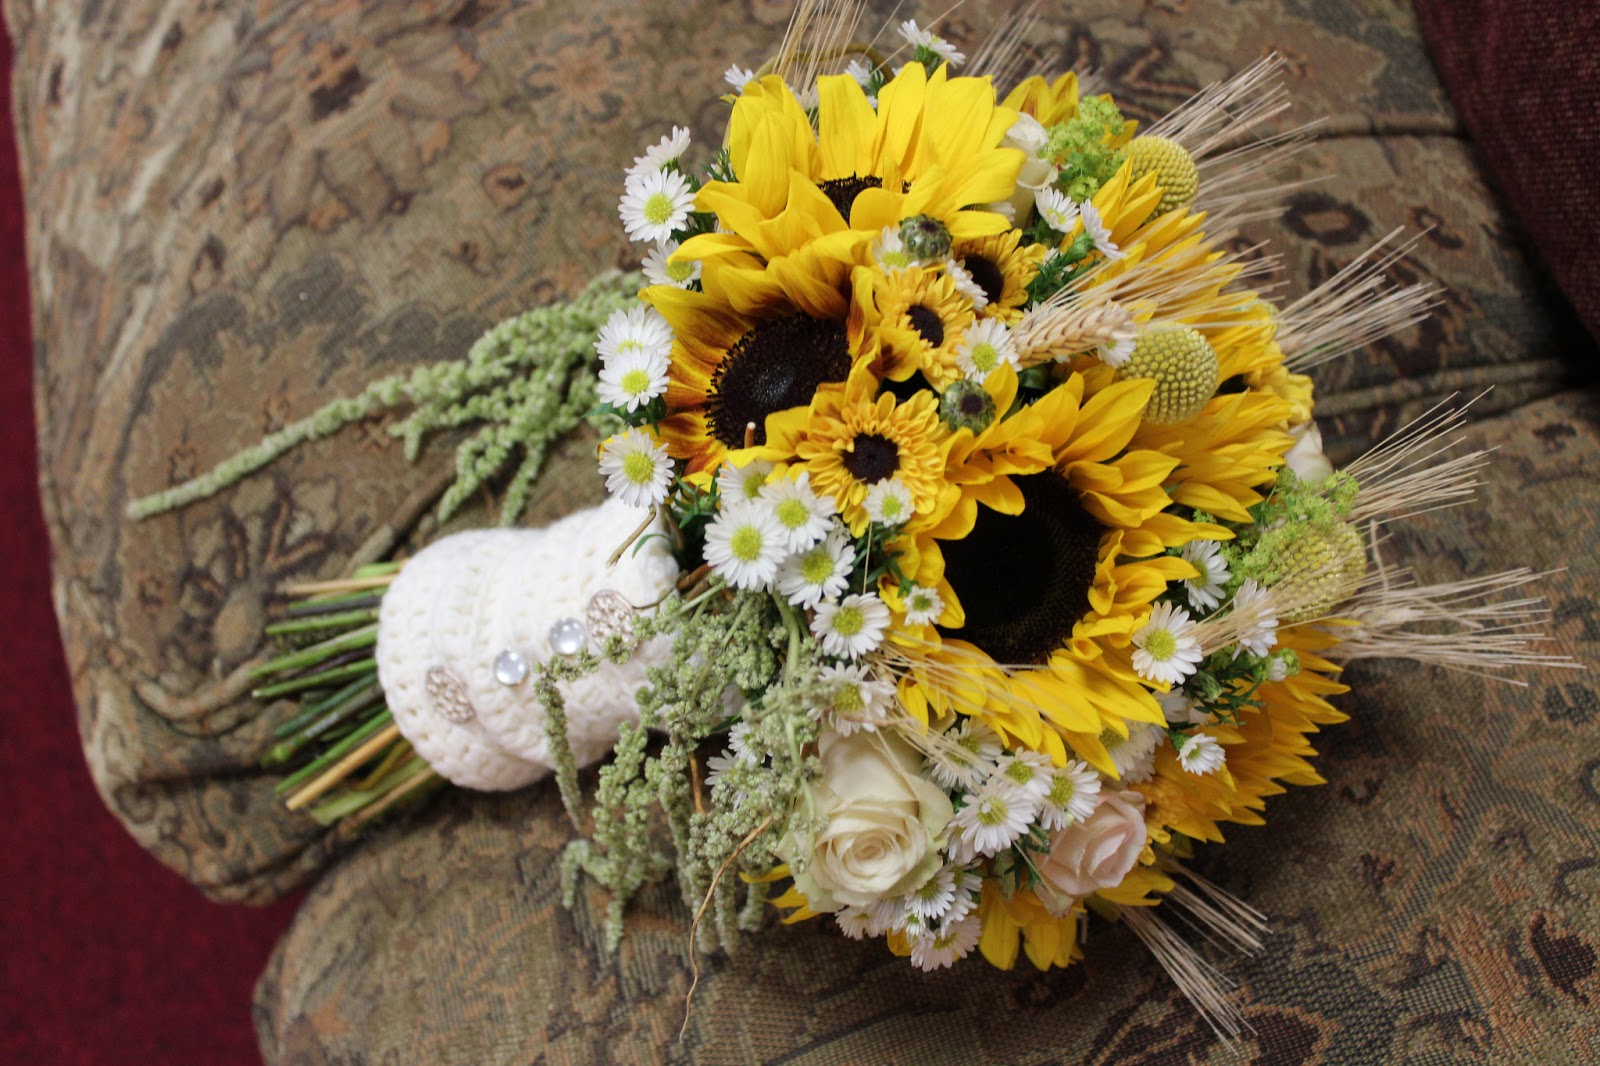 Matrimonio Country Chic Girasoli : Savannah s garden kristin fall sunflower wedding at